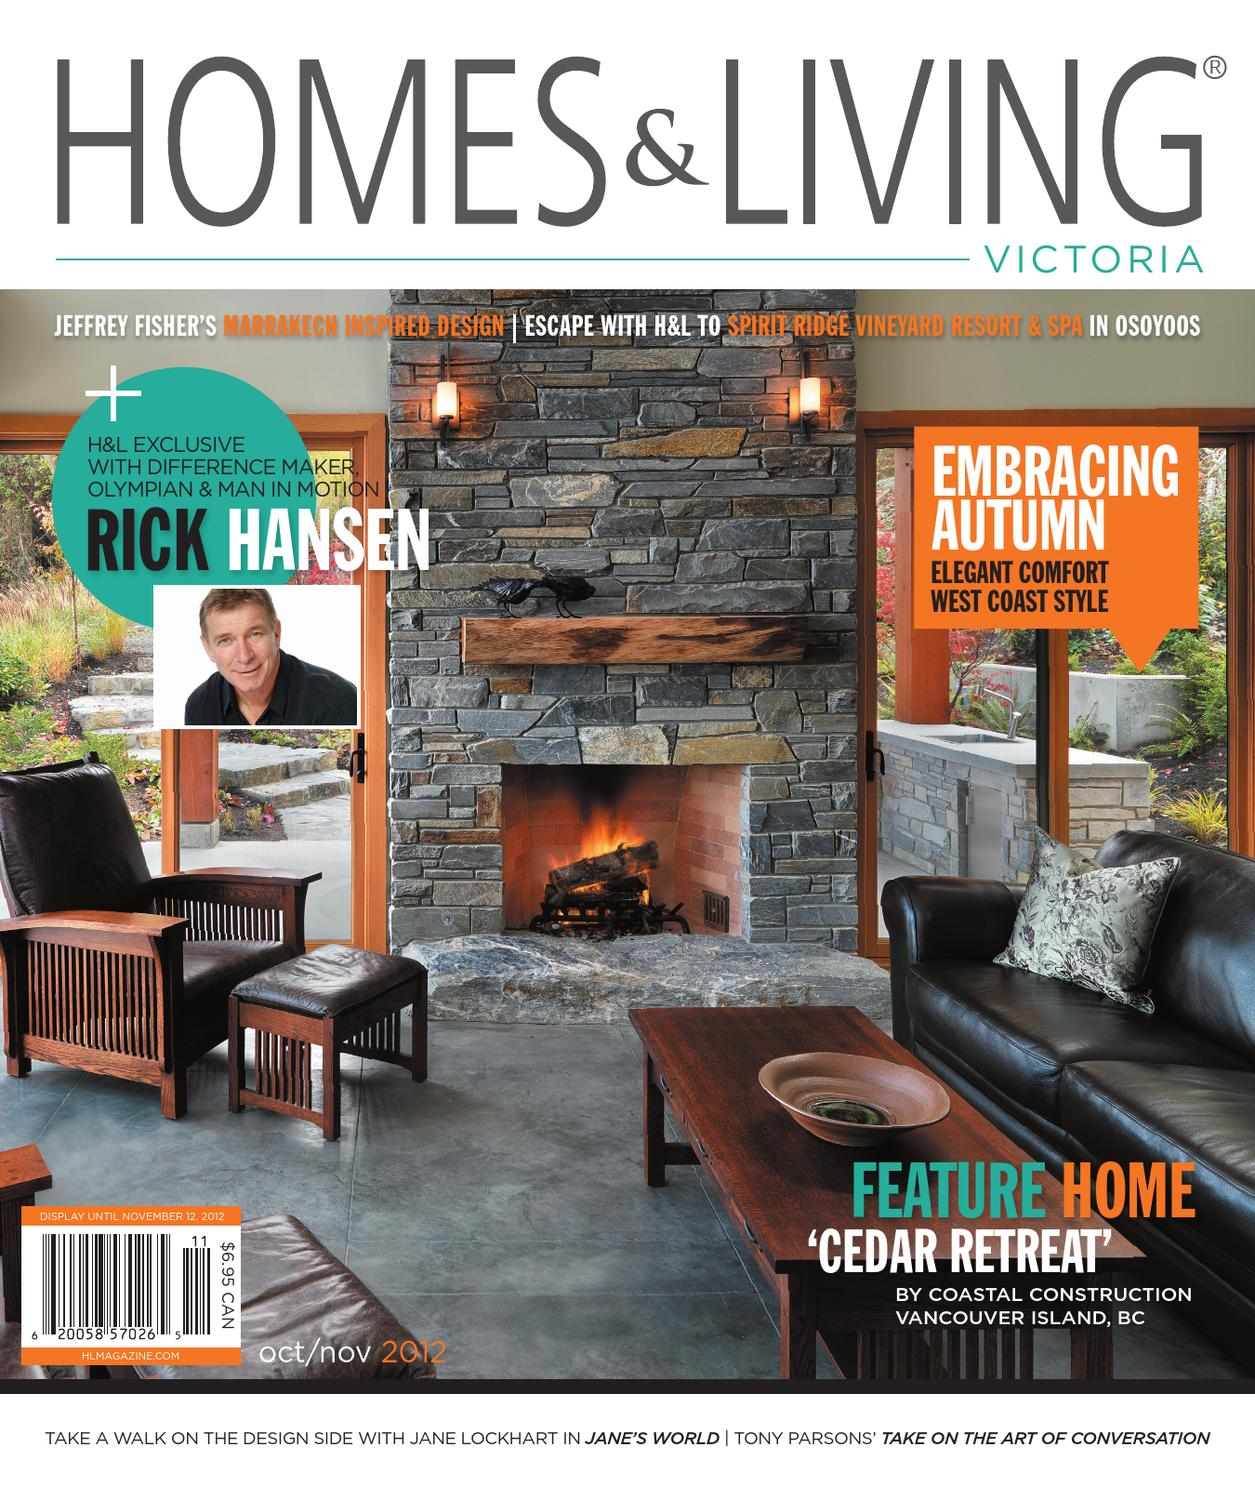 Home Designs October 2012: Oct/Nov 2012 By Homes & Living